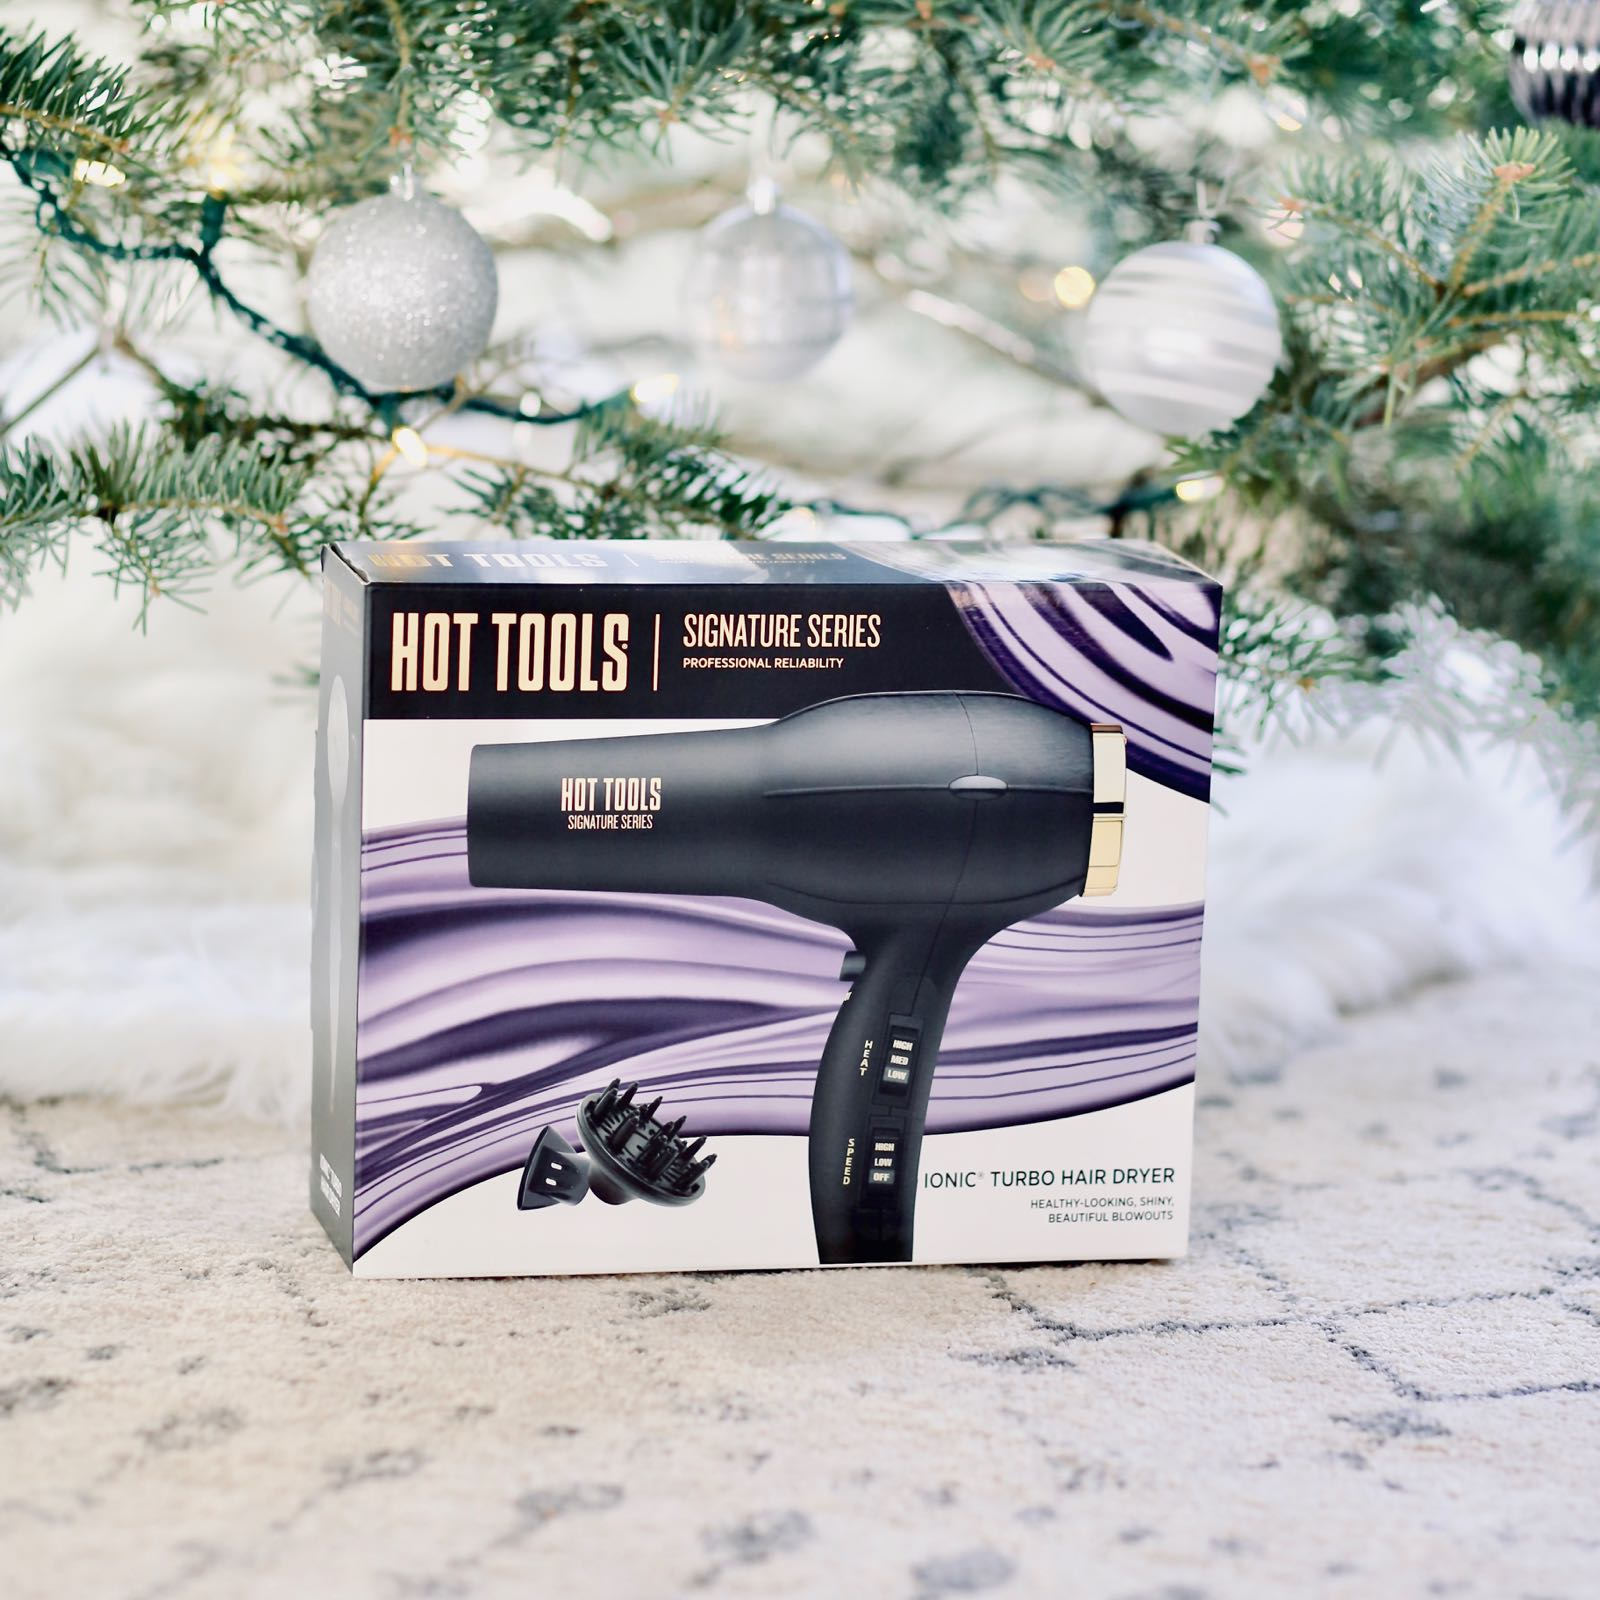 Hot Tools Signature Series blow dryer review - bookmarking this one!